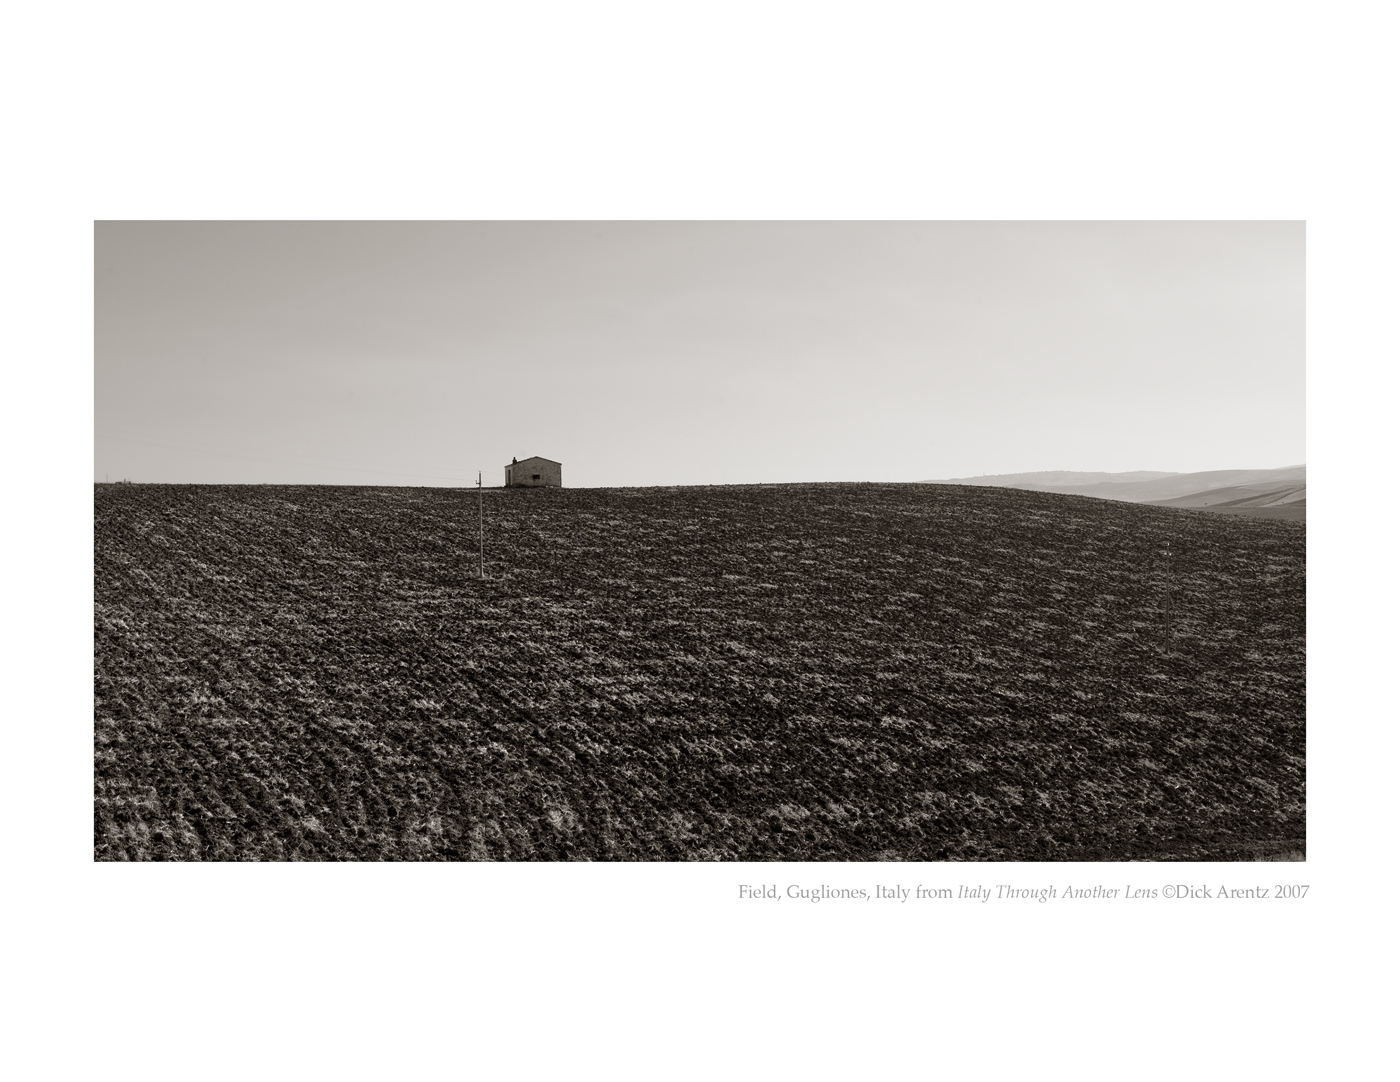 Field, Gugliones, Italy - Italy Through Another Lens